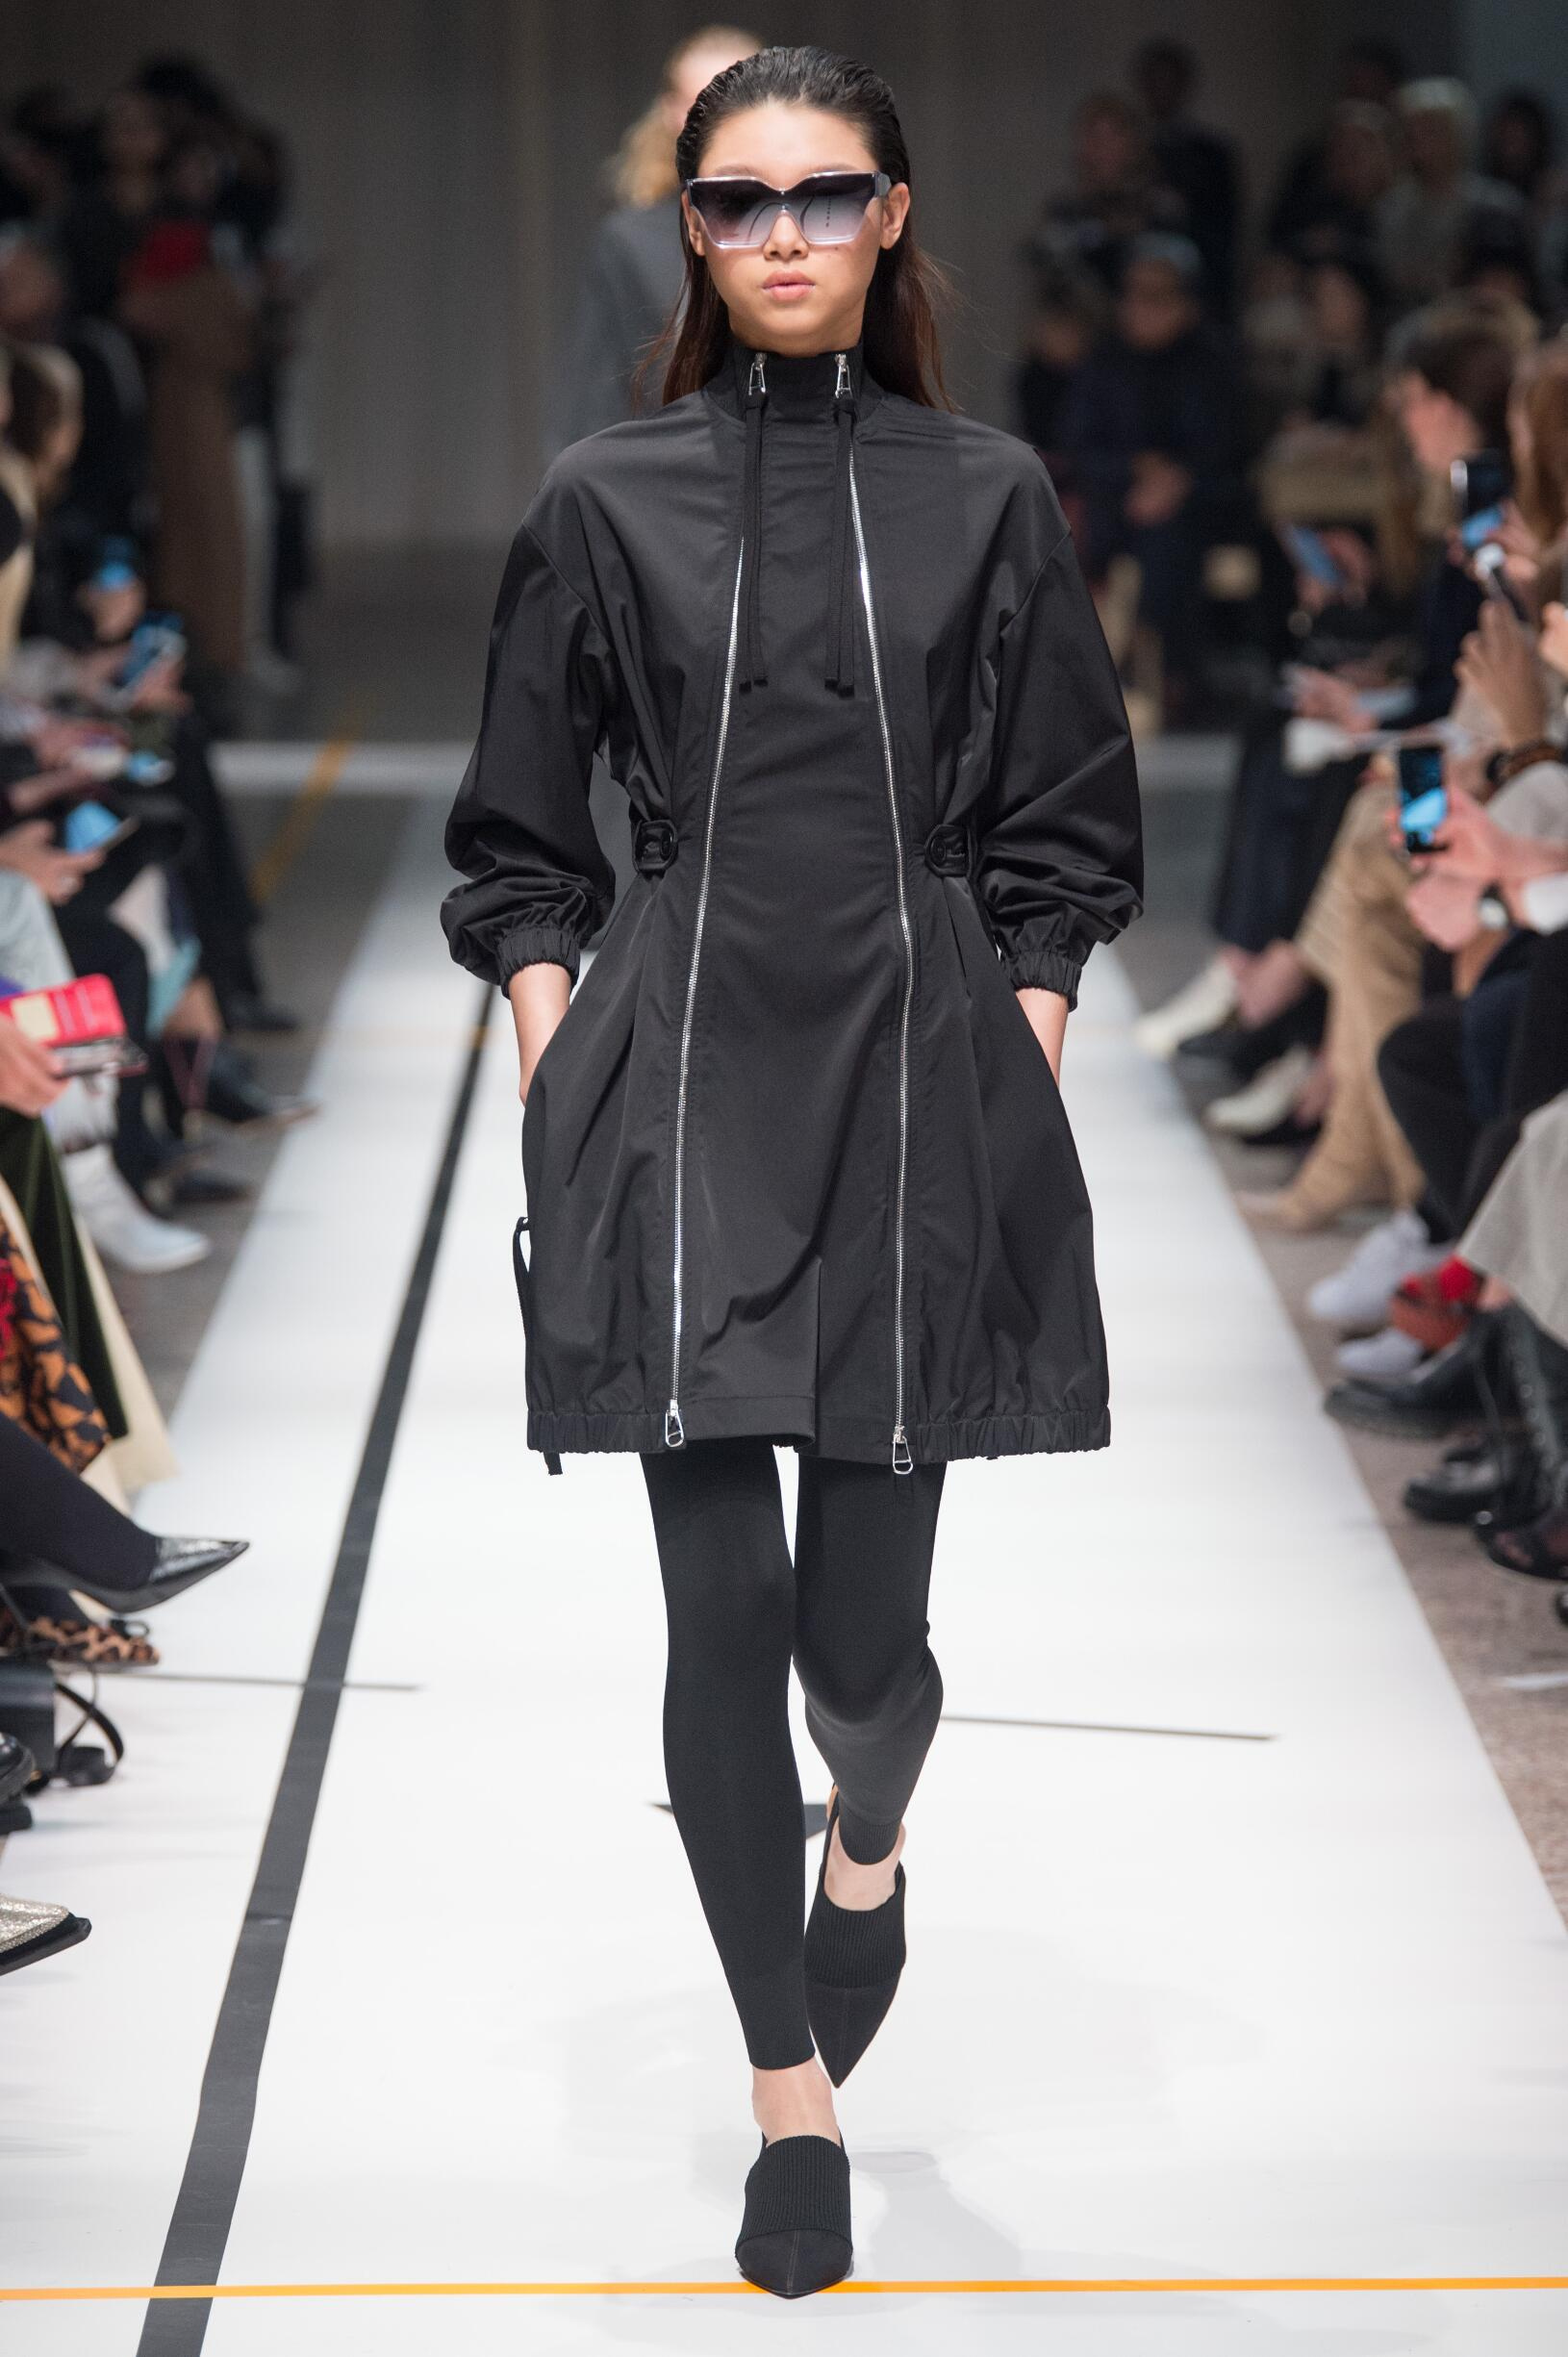 Sportmax Woman Milan Fashion Week